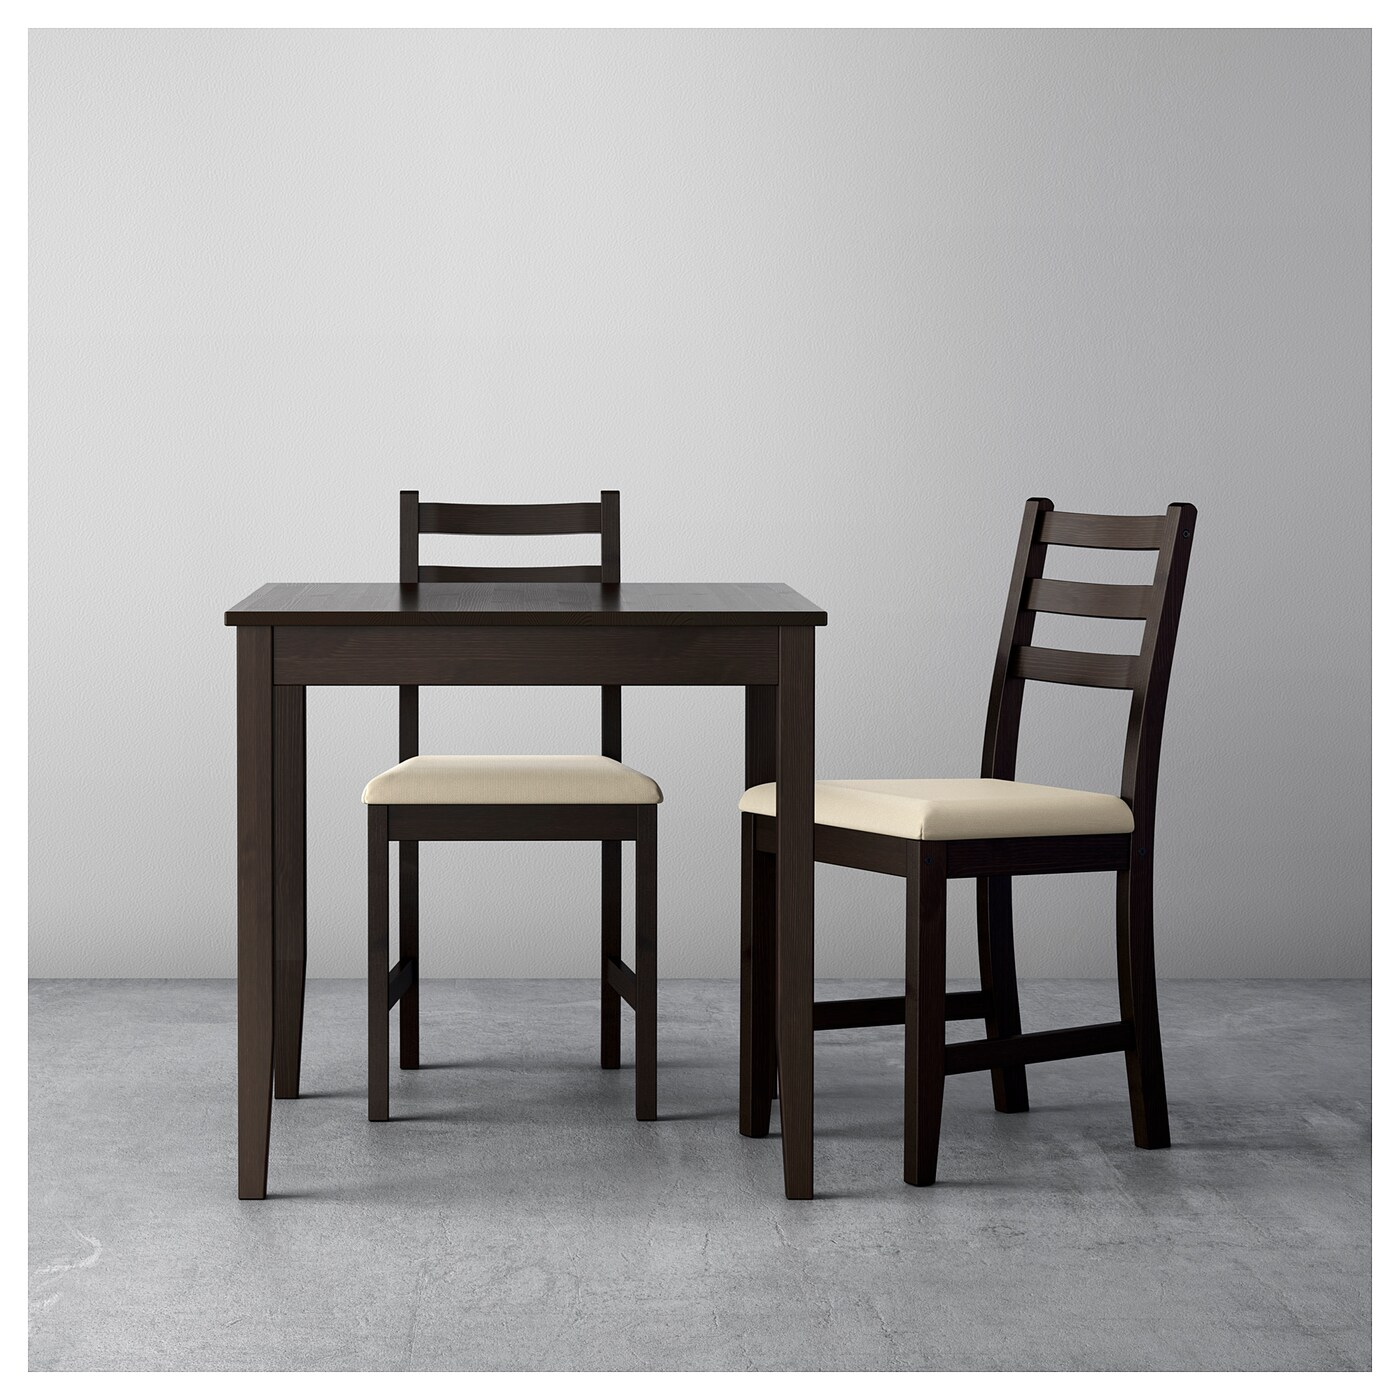 Table With 2 Chairs Lerhamn Table And 2 Chairs Black Brown Ramna Beige 74 X 74 Cm Ikea